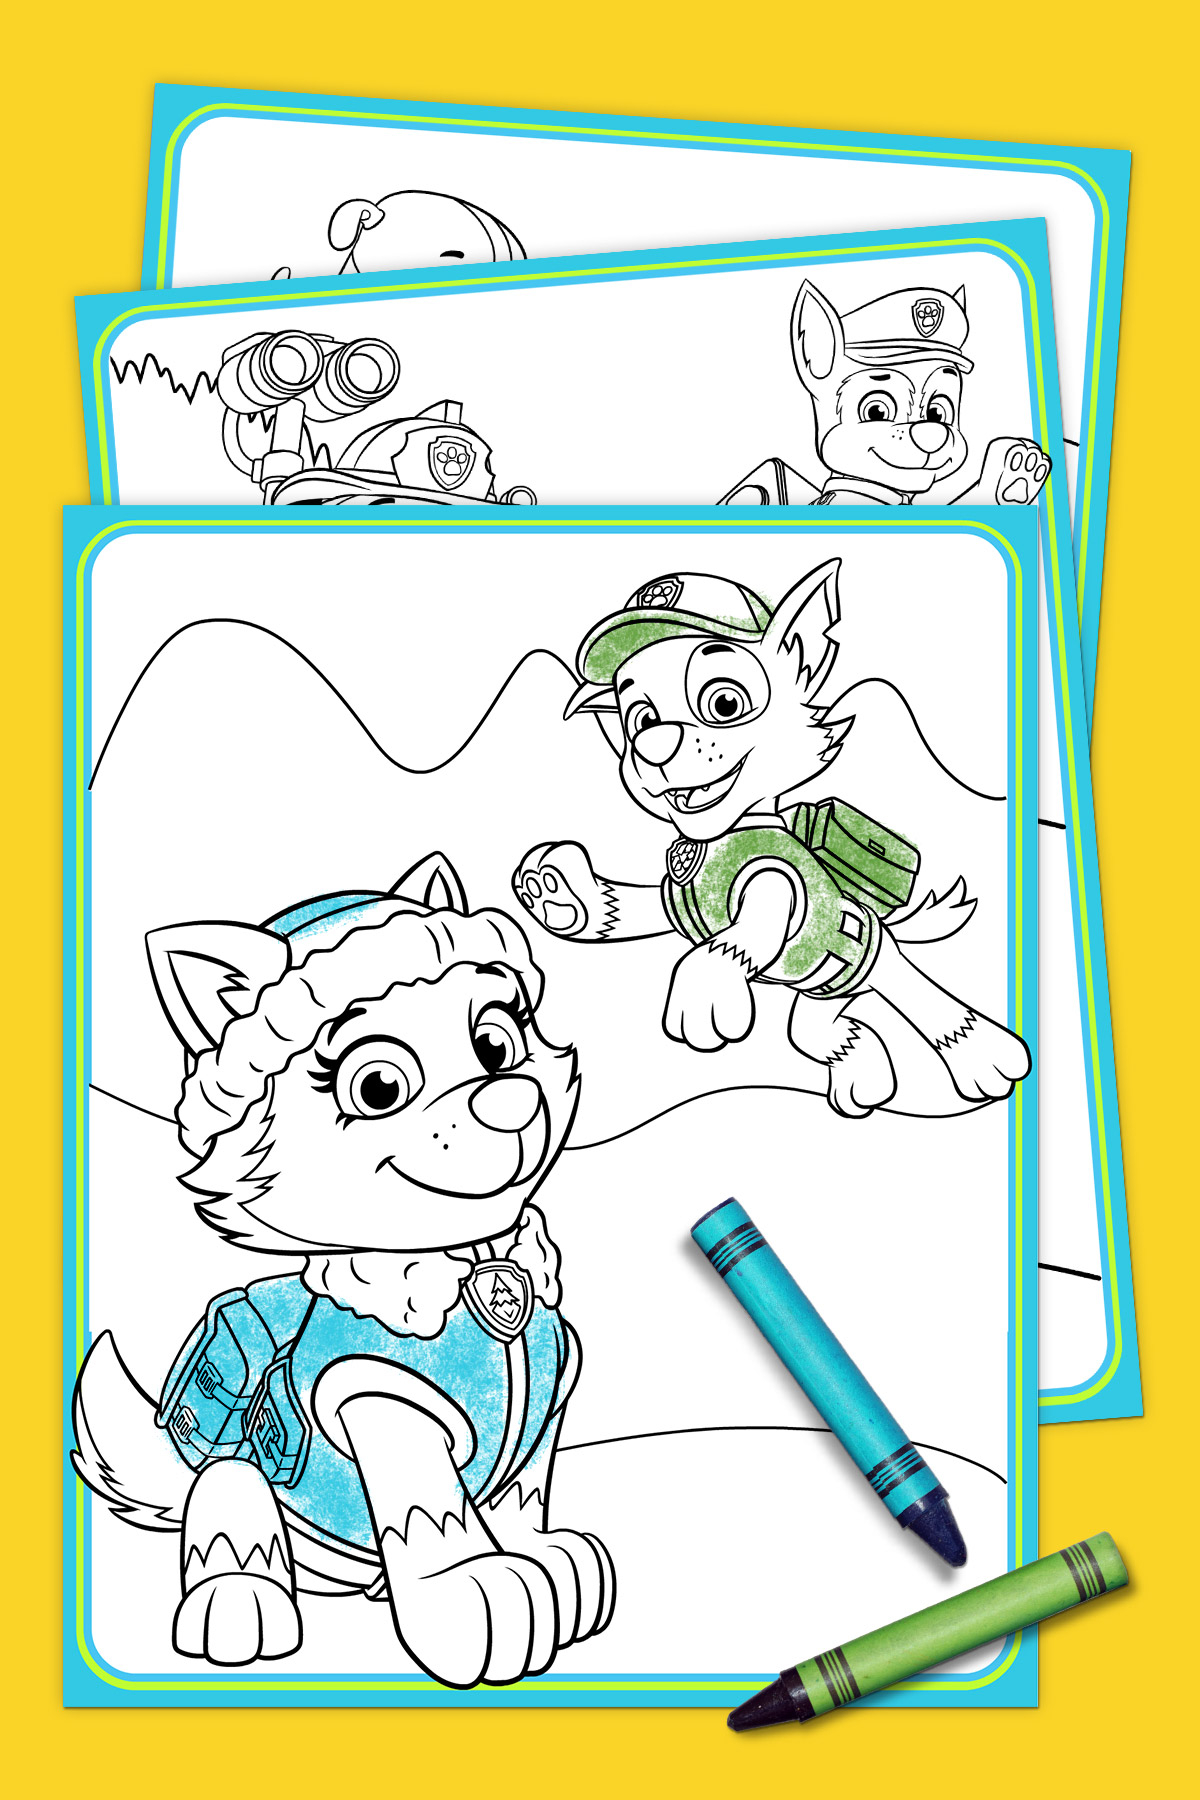 Paw Patrol Coloring Pages Paw Patrol Everest Coloring Pack Nickelodeon Parents